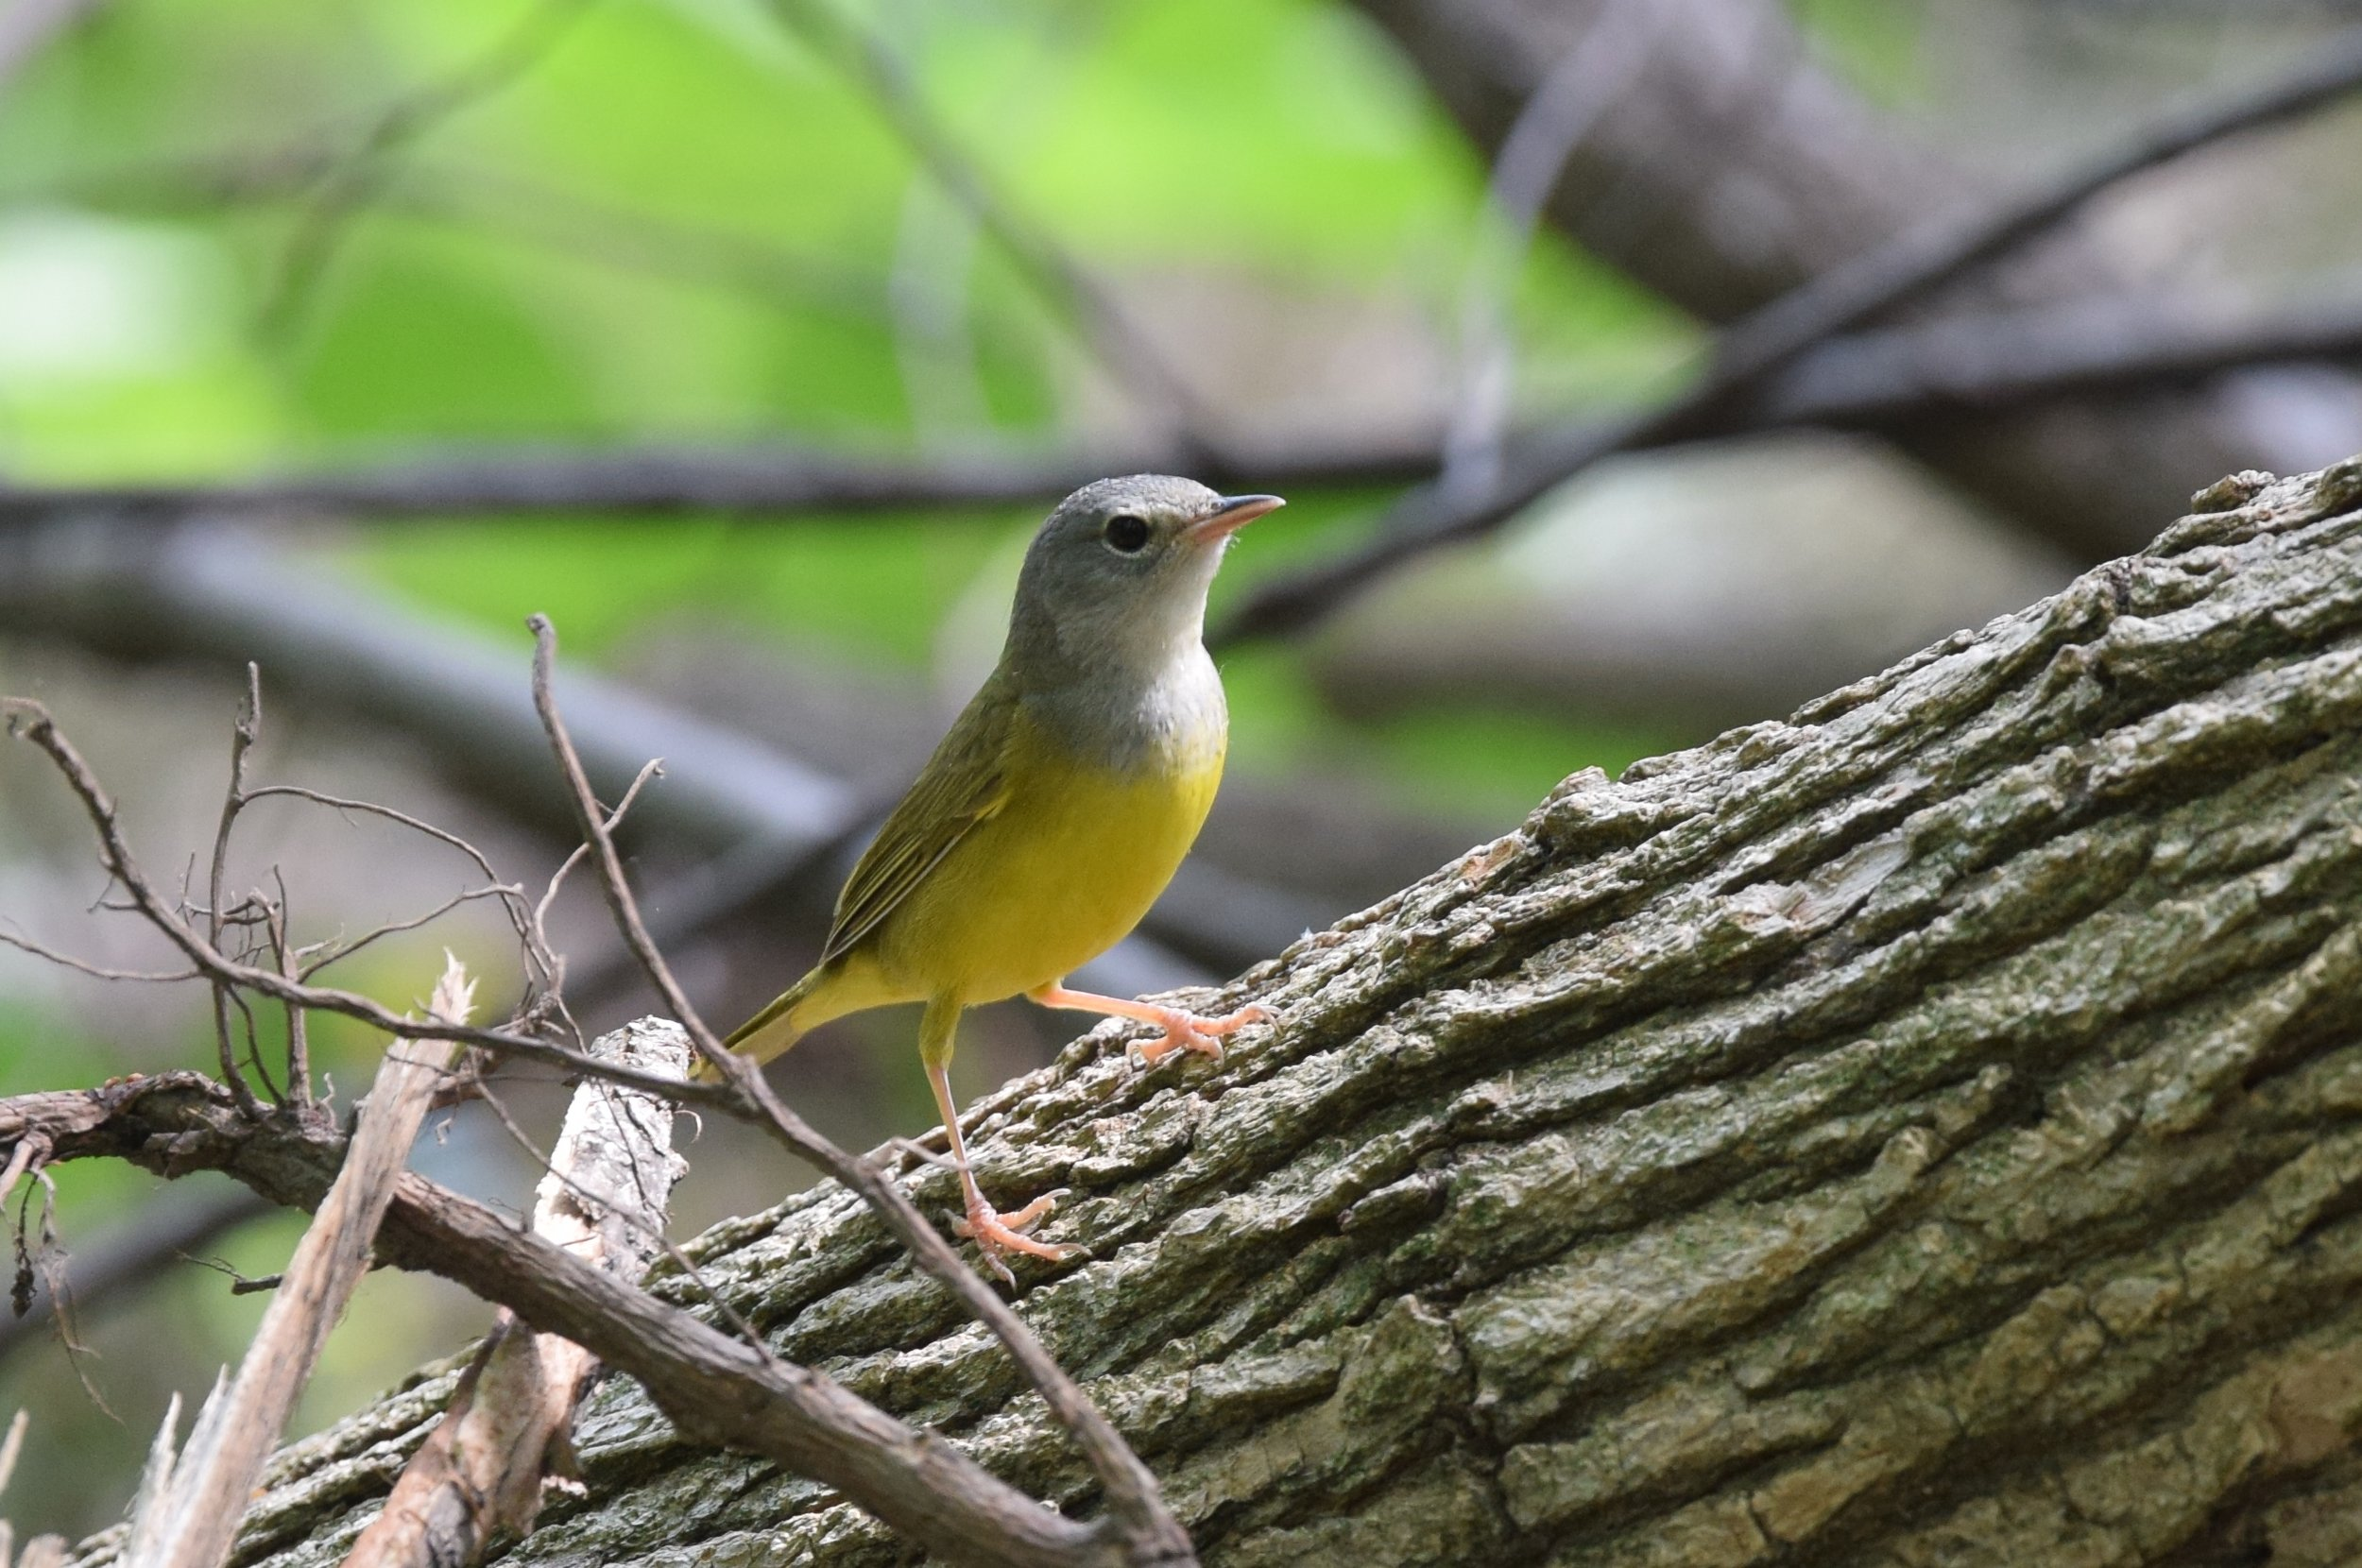 """- Mourning Warbler (Geothlypis philadelphia)Mourning Warblers live in shrubby, dense undergrowth in deciduous forests. They eat insects and Cecropia plant matter. Their average wingspan is 7.1 in. and they weigh 0.4-0.5 oz. Mourning Warblers sing """"chirry-chirry-chirry-choory-choory"""" that descends in pitch. They are protected on the US Migratory Bird list.Photo Credits: Andy Reago & Chrissy McClarren"""